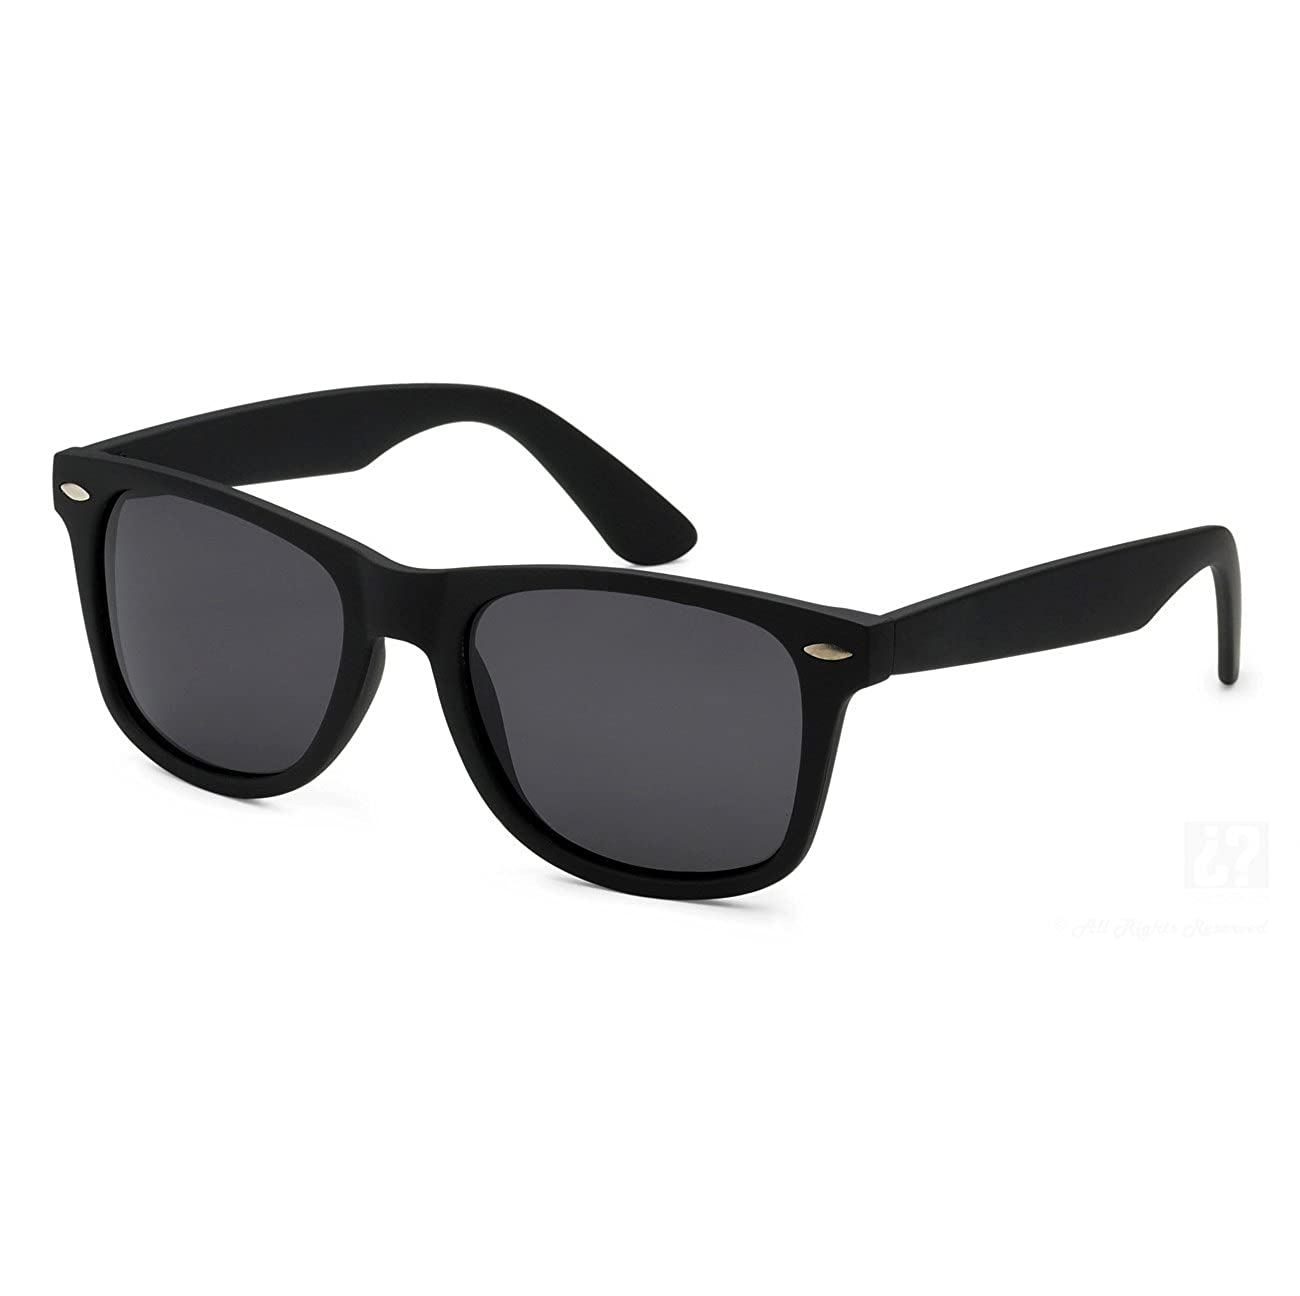 Children Wayfarer Color Frame Sunglasses P1301 (Black)